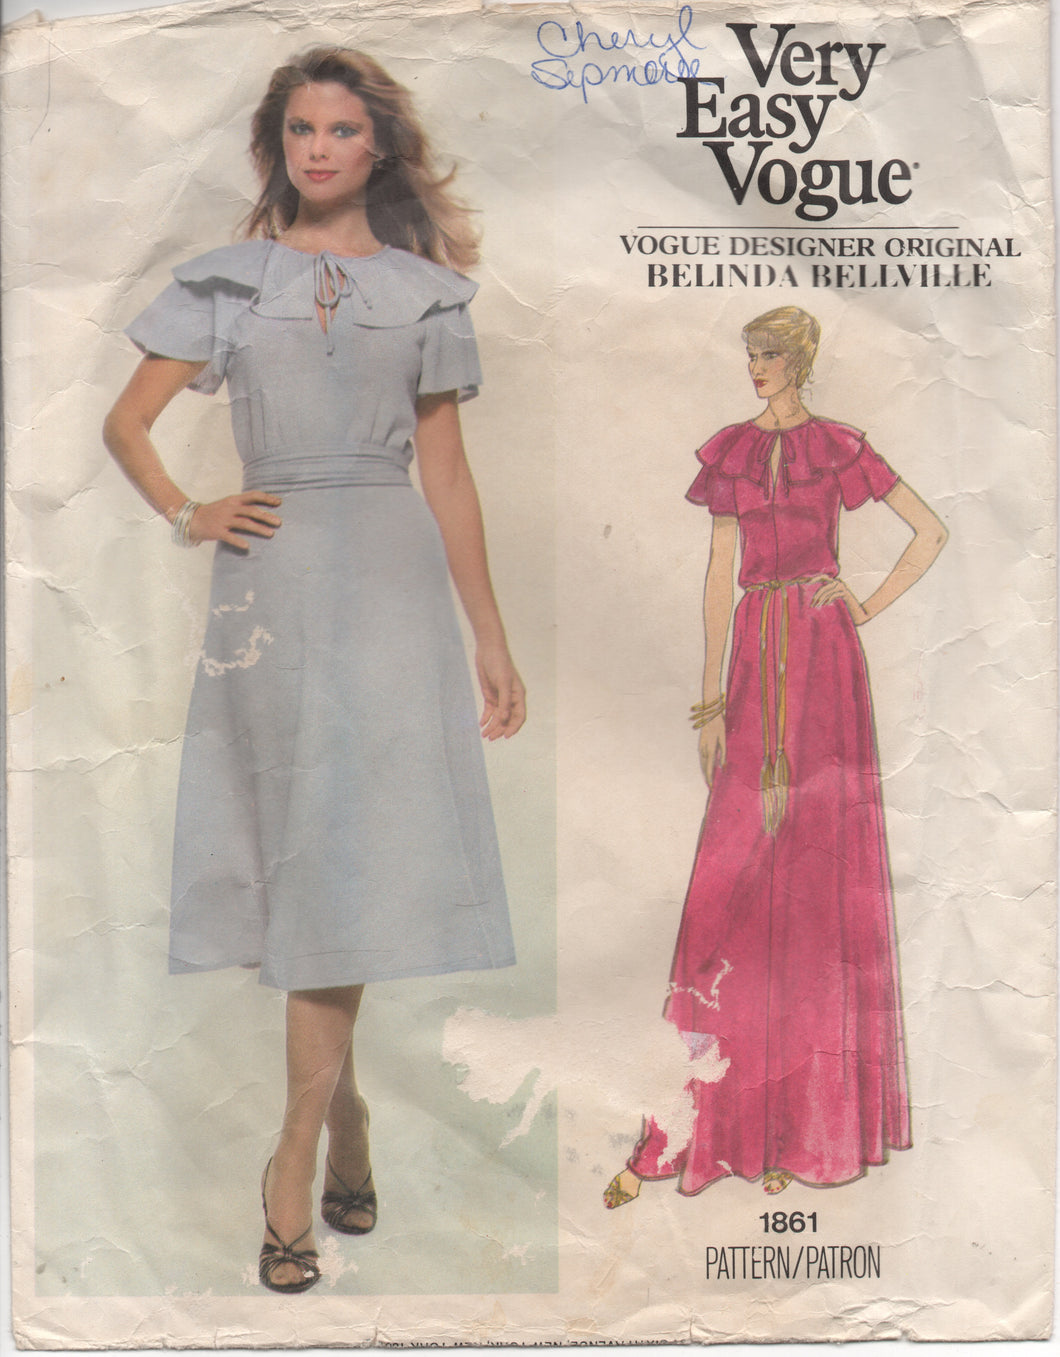 1970's Very Easy Vogue Belinda Bellville Designer One Piece Dress with Ruffle Collar Pattern - Bust 34